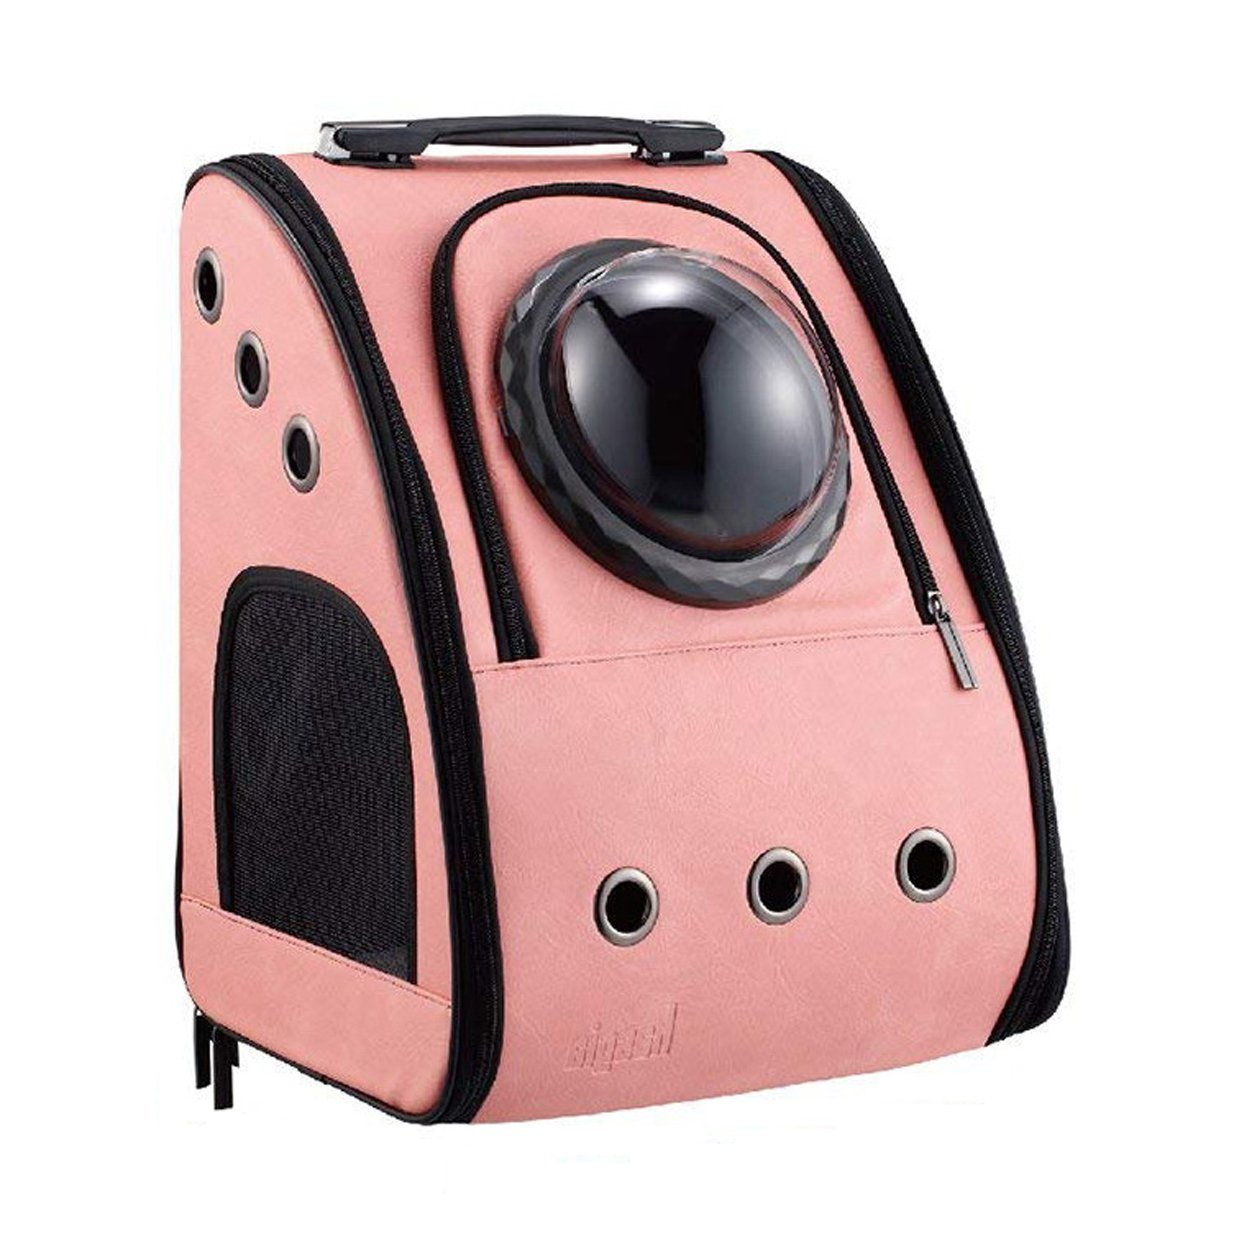 Hasgia Cat Dog Carriers Backpack Portable Traveler Handbag for Cats and Small Dogs with Space Transparent Vision Cushion-Mat Cingulate for Fit Pets up to 15Pounds Large Breathable Comfortable (Pink)